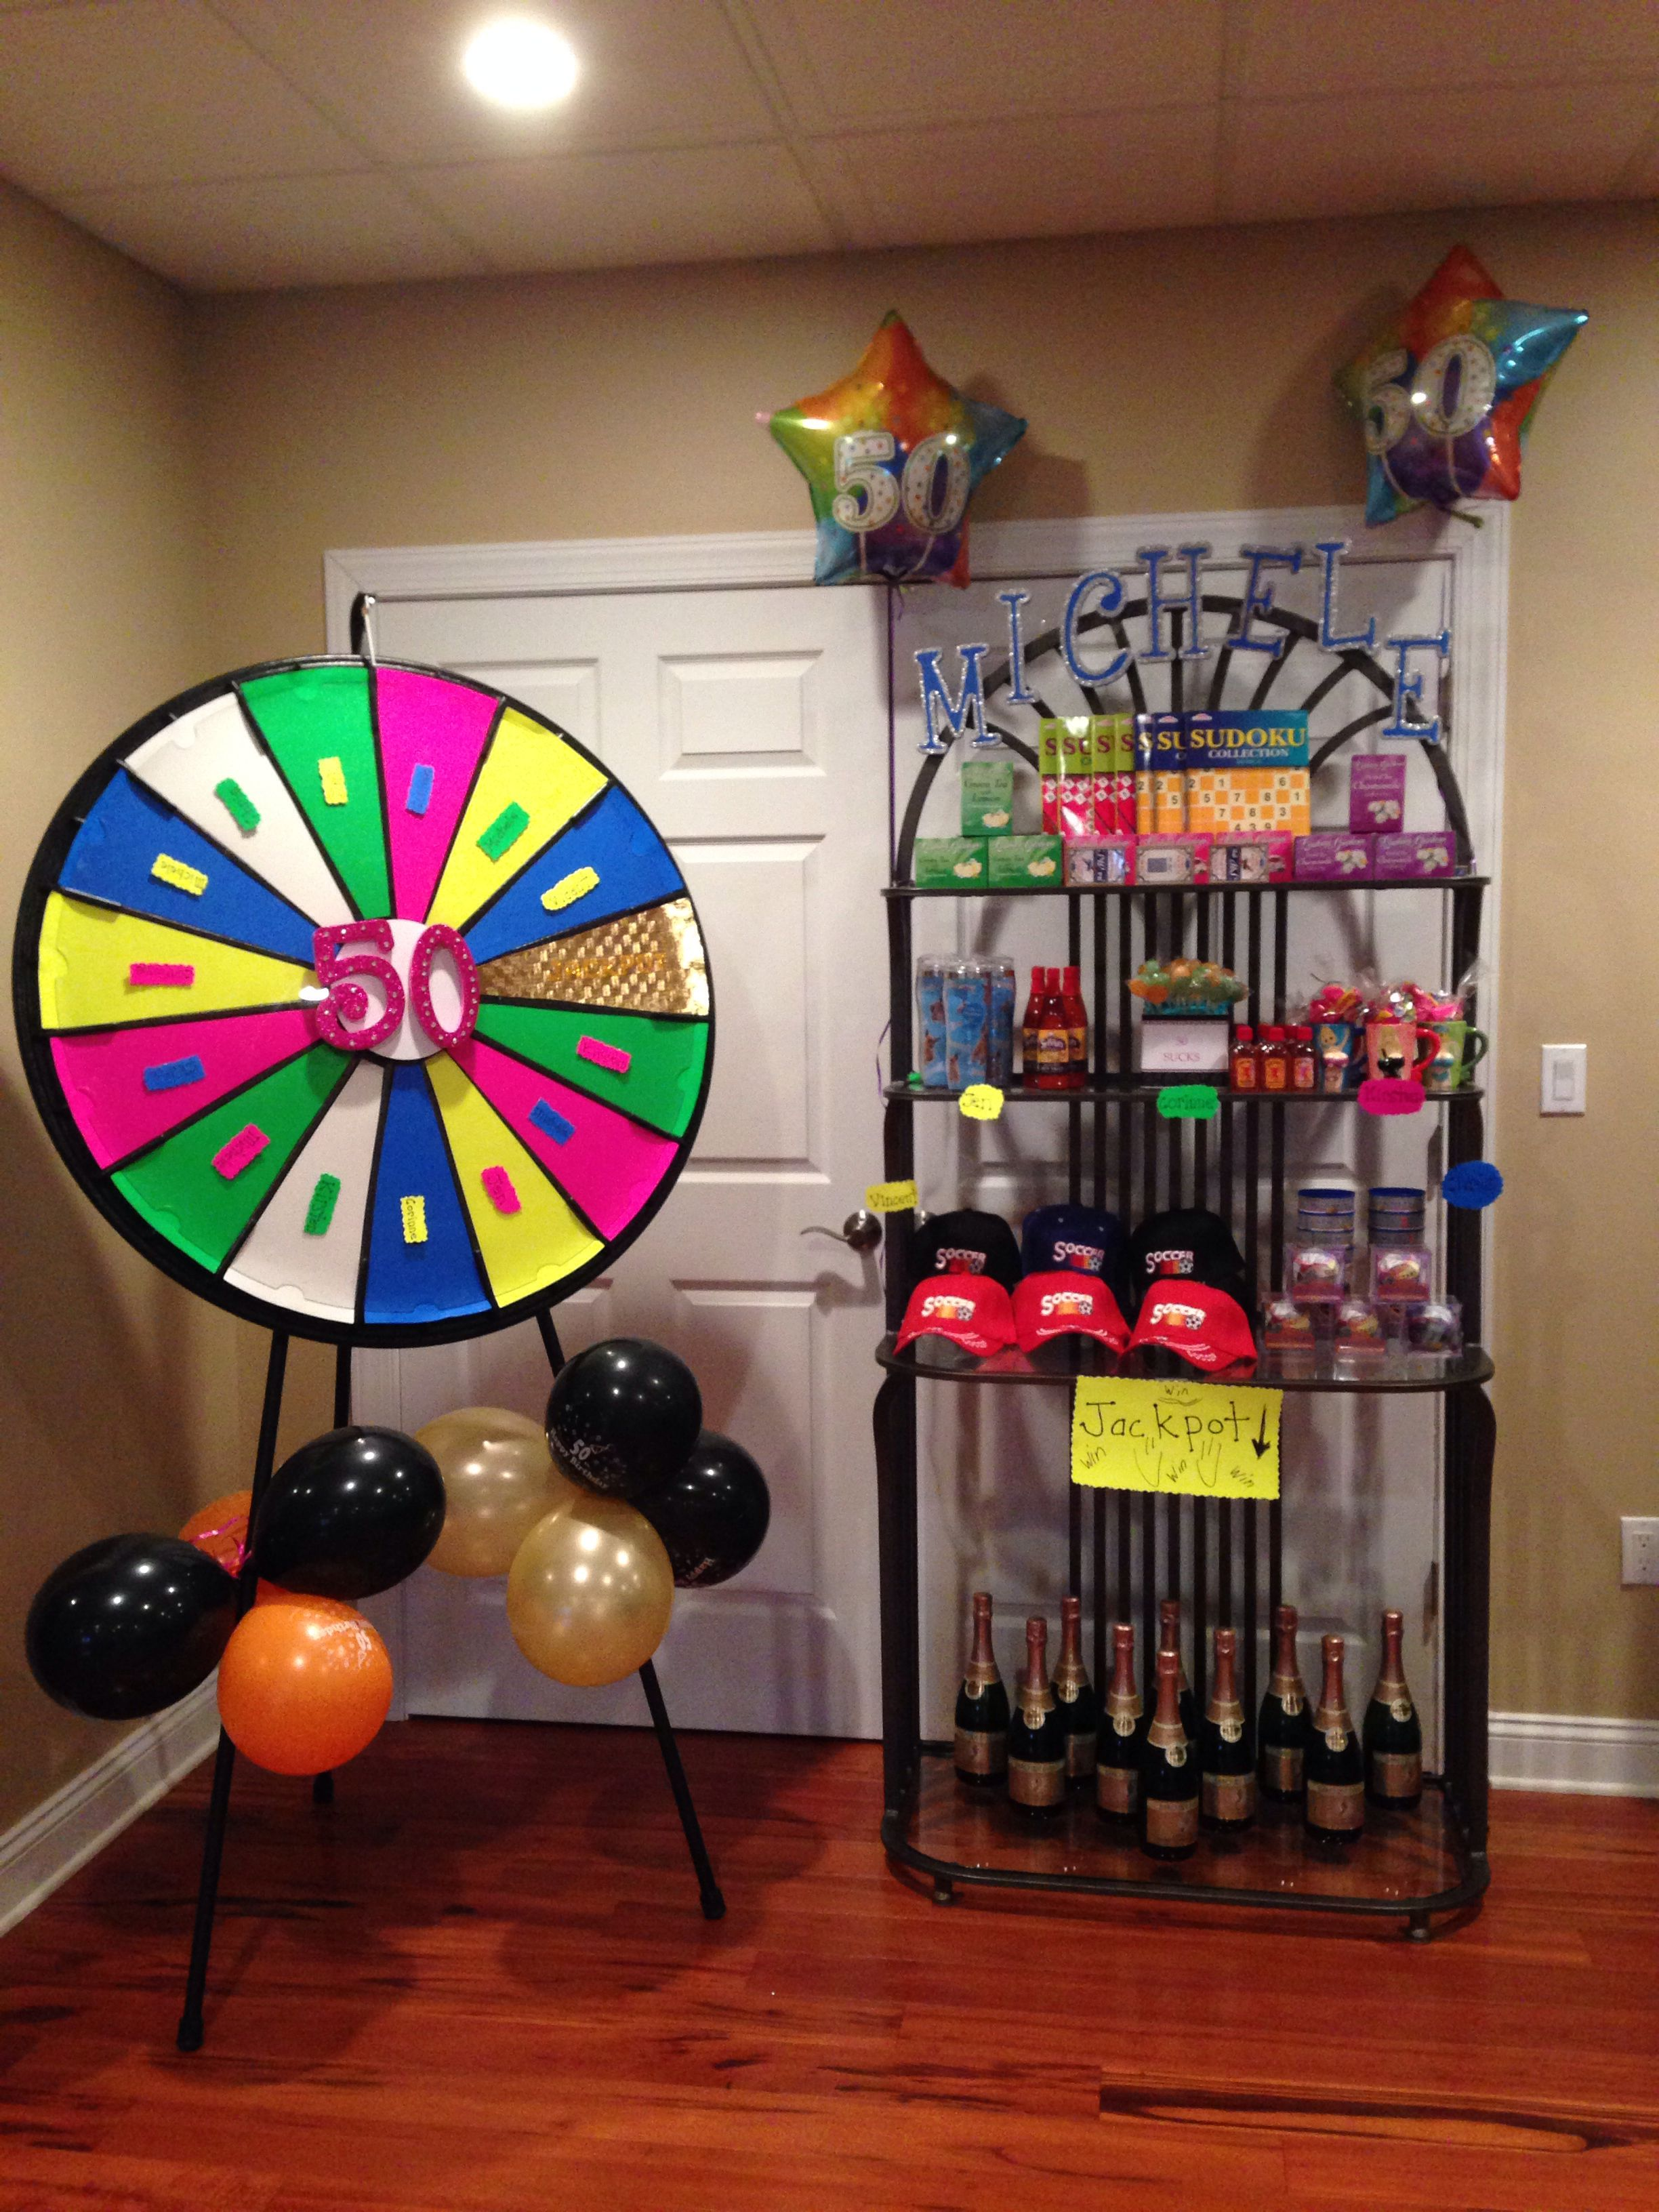 50th birthday party games and activities ; d006b99479948a856a9a808b35ecb656